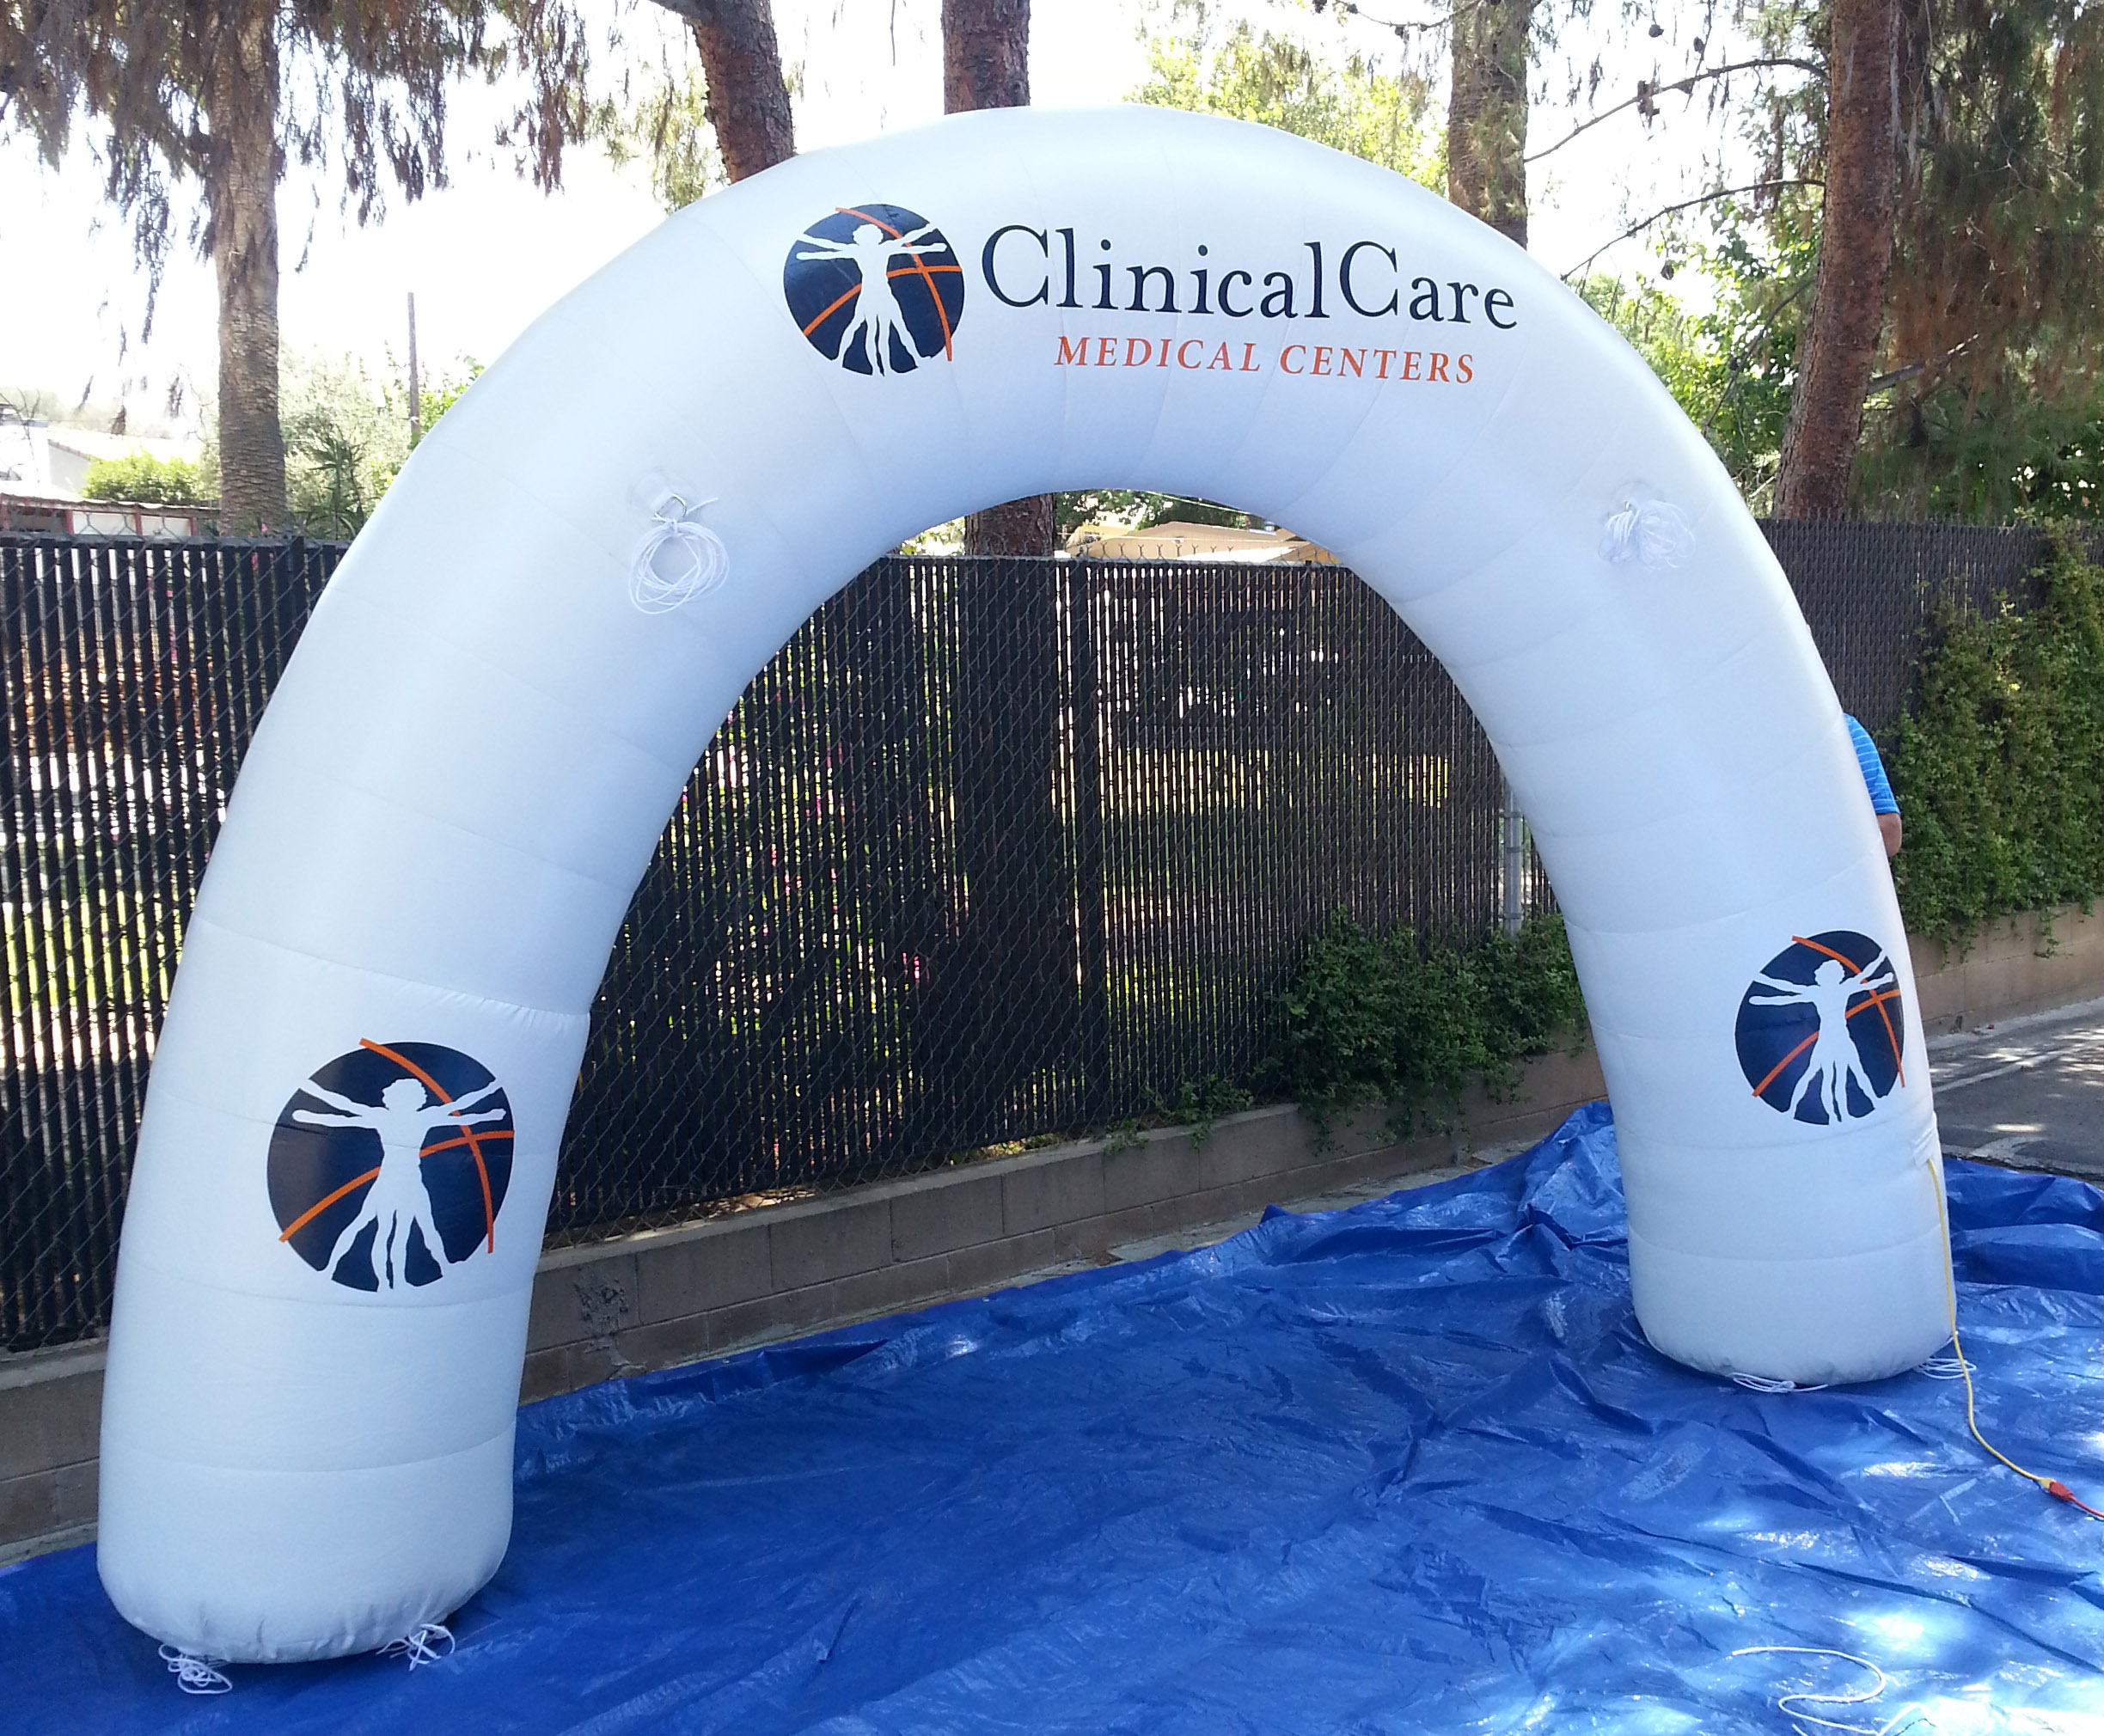 Add a special touch to your event or brand in J.D's Inflatable Arches & Tunnels